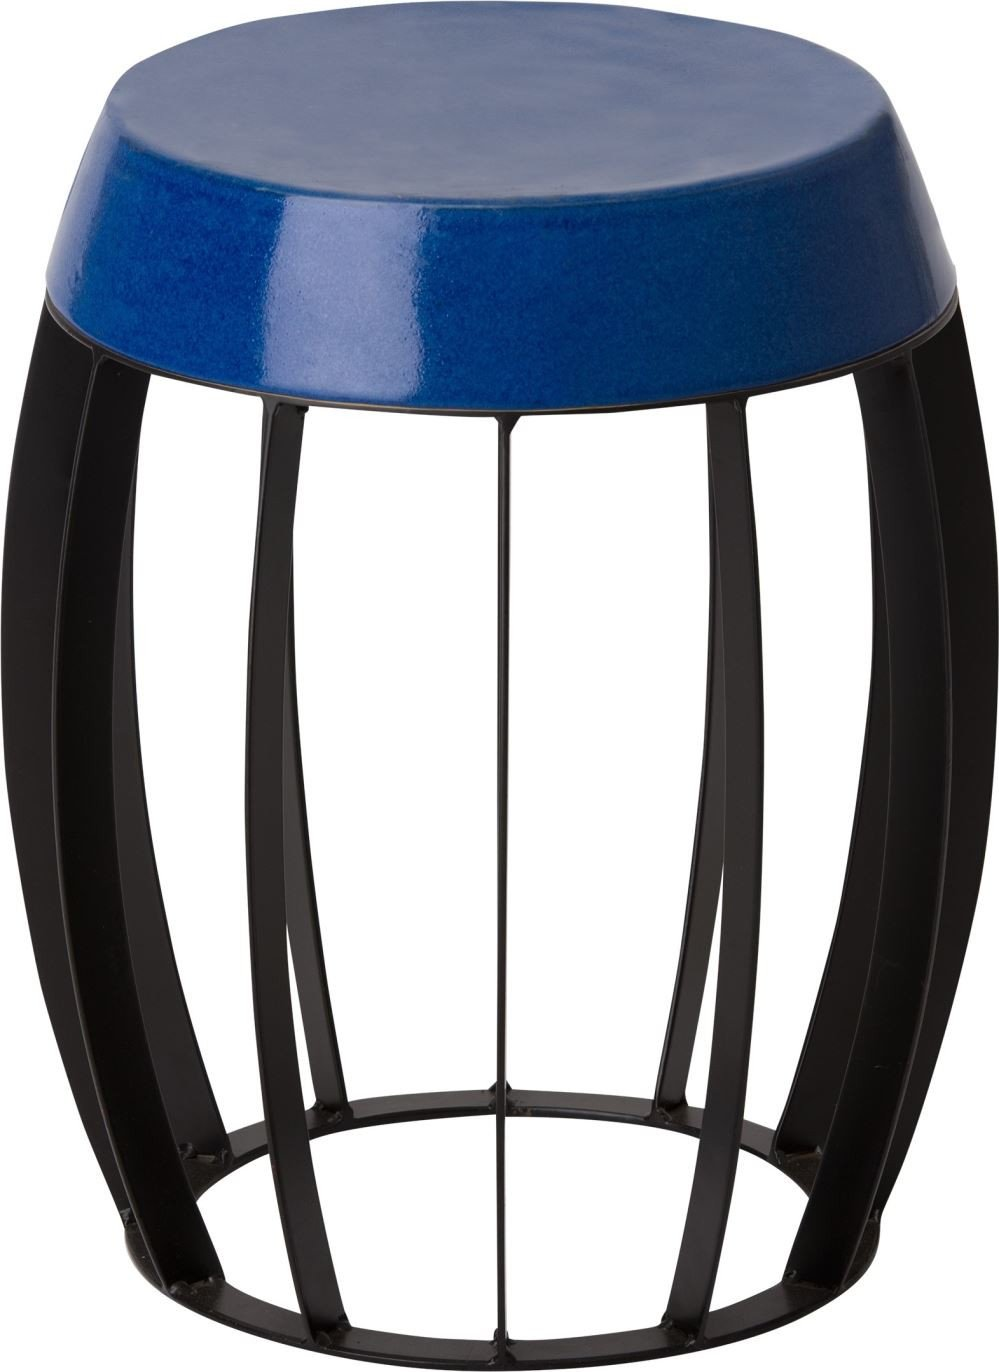 ellis metal stool table powedercoated black with royal blue ceramic top accent stools target bar martha stewart outdoor furniture sofa drawers pier one wicker chair small entry